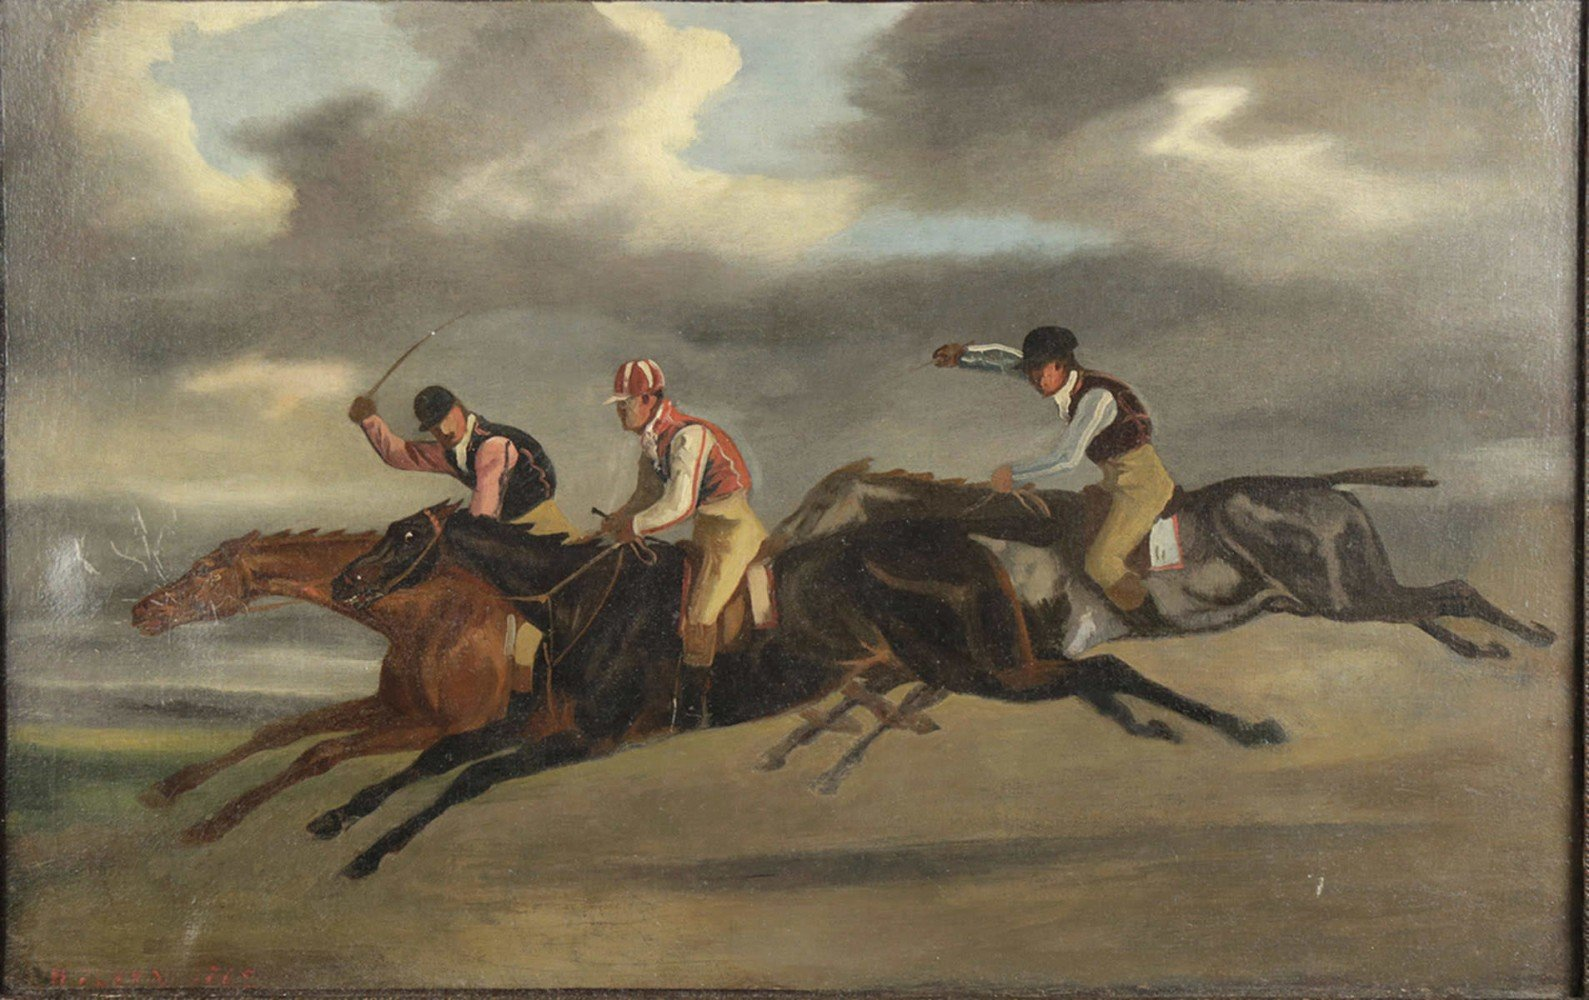 Racing Scene - Attributed to Samuel Henry Alken by Samuel Henry Alken